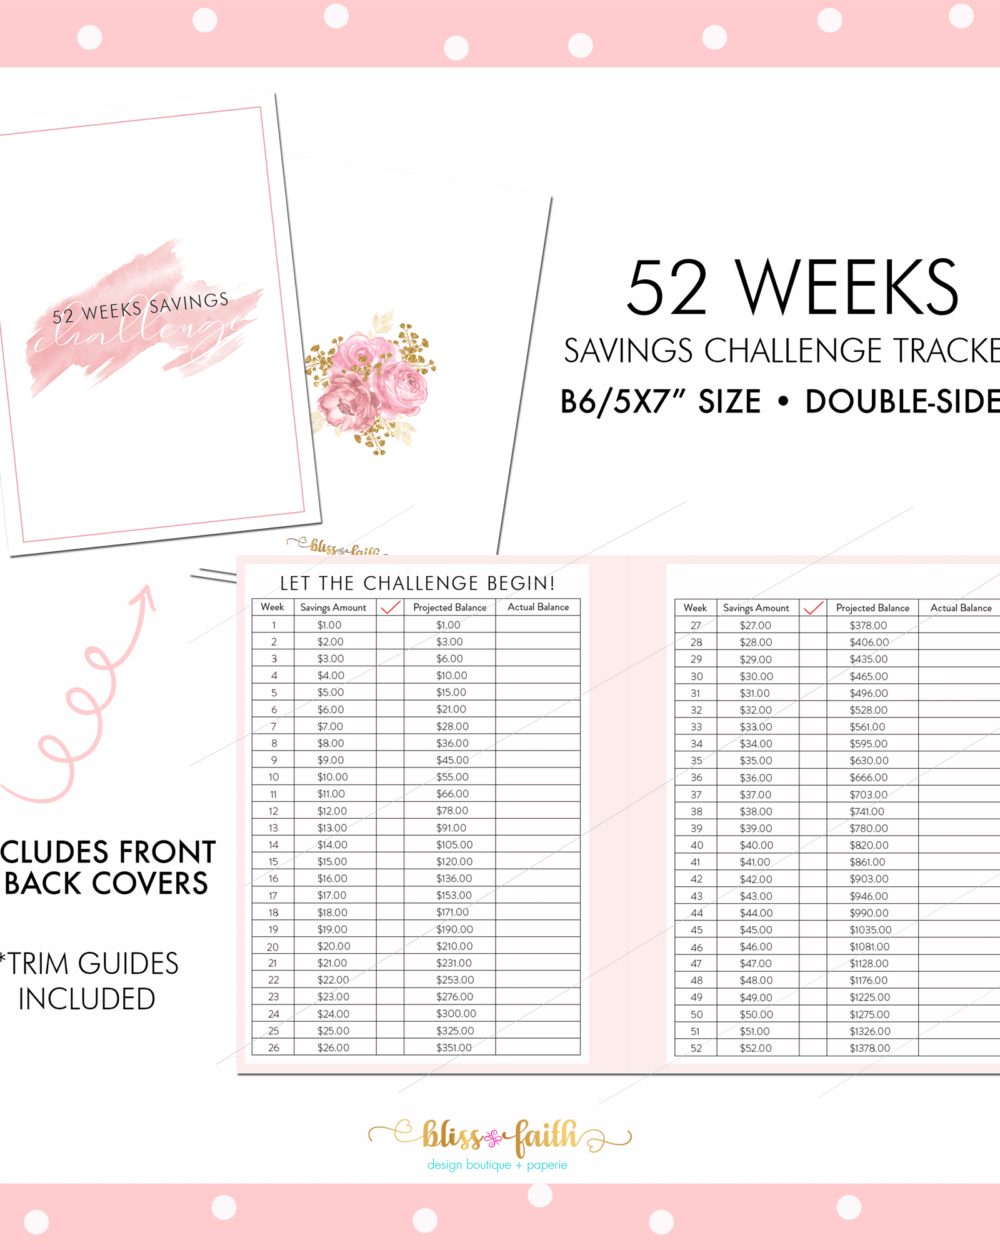 52 Weeks Savings Challenge Tracker B6 Printable | BlissandFaith.com